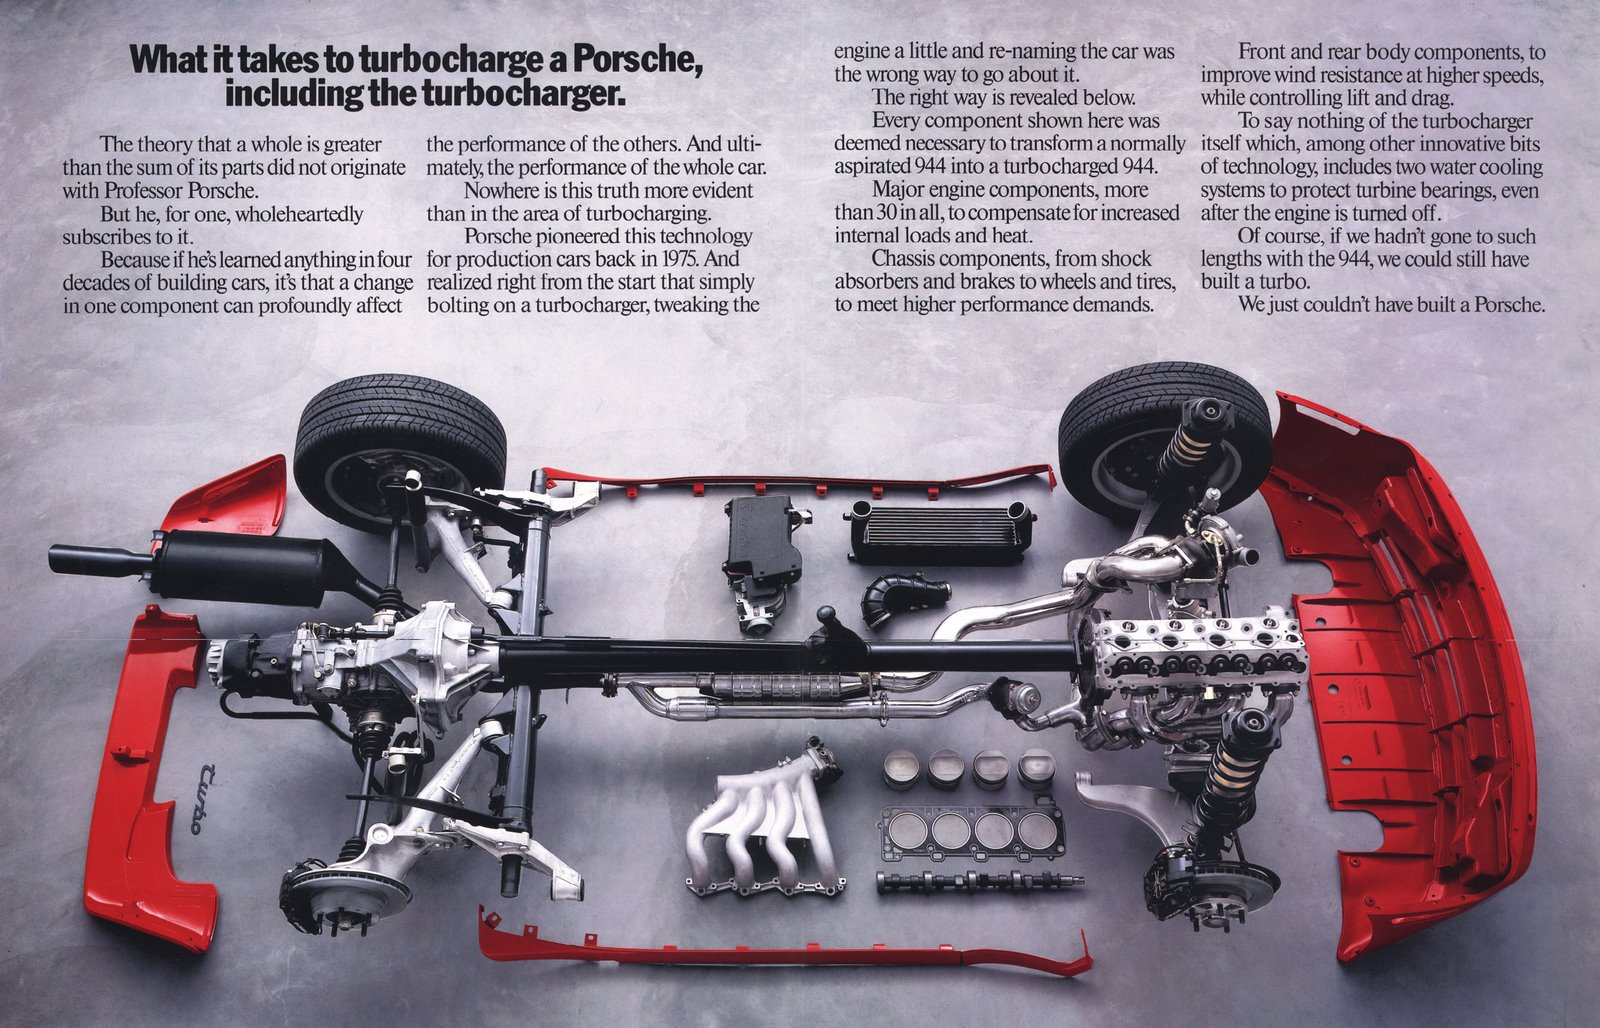 Porsche 928 Engine Diagram Not Lossing Wiring 1984 These Are The Best Print Ads Ever Autoevolution Intake Vacume Lines